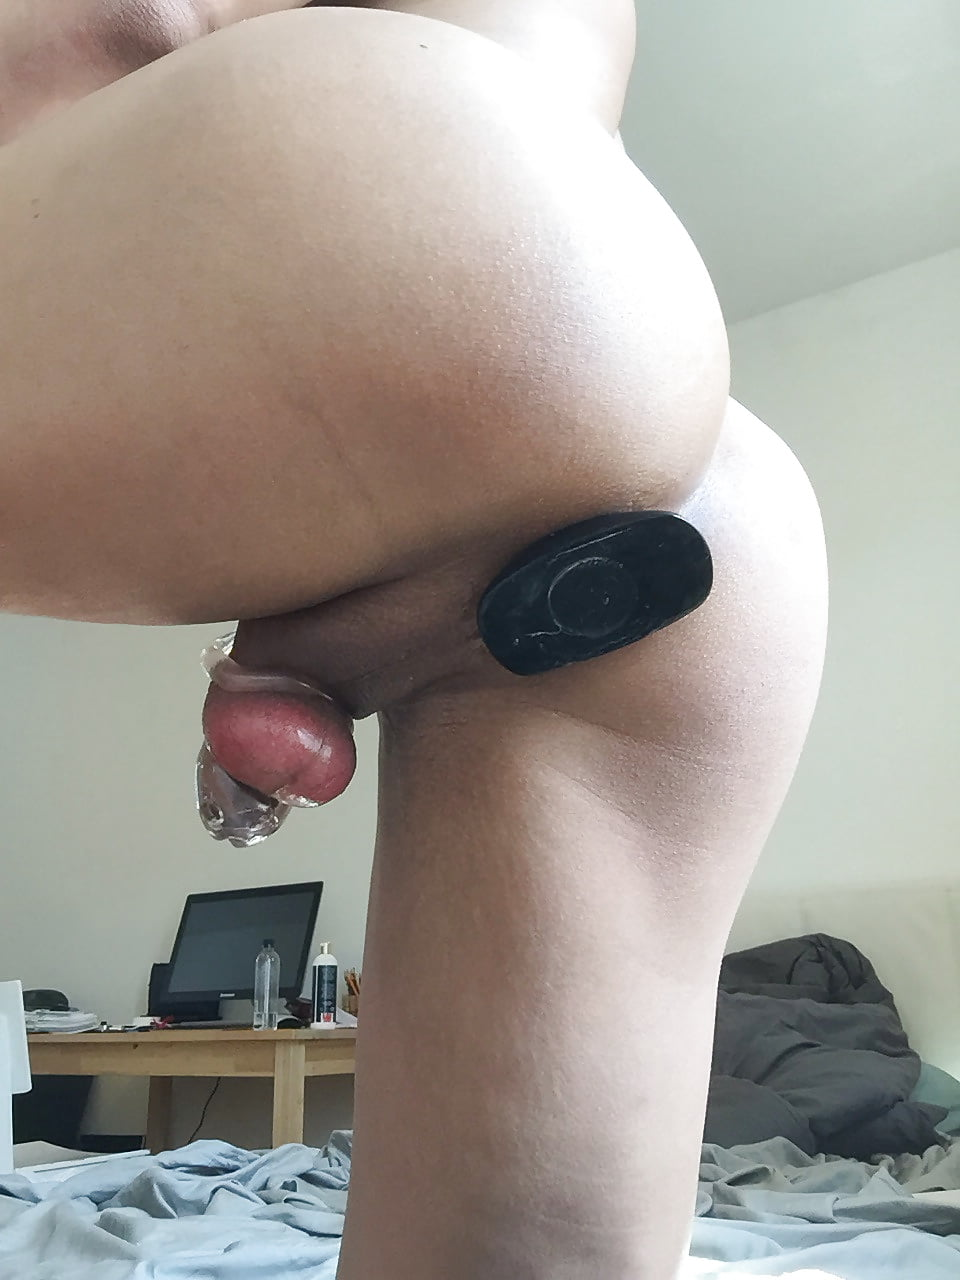 Guy shoves anal plug up ass #1